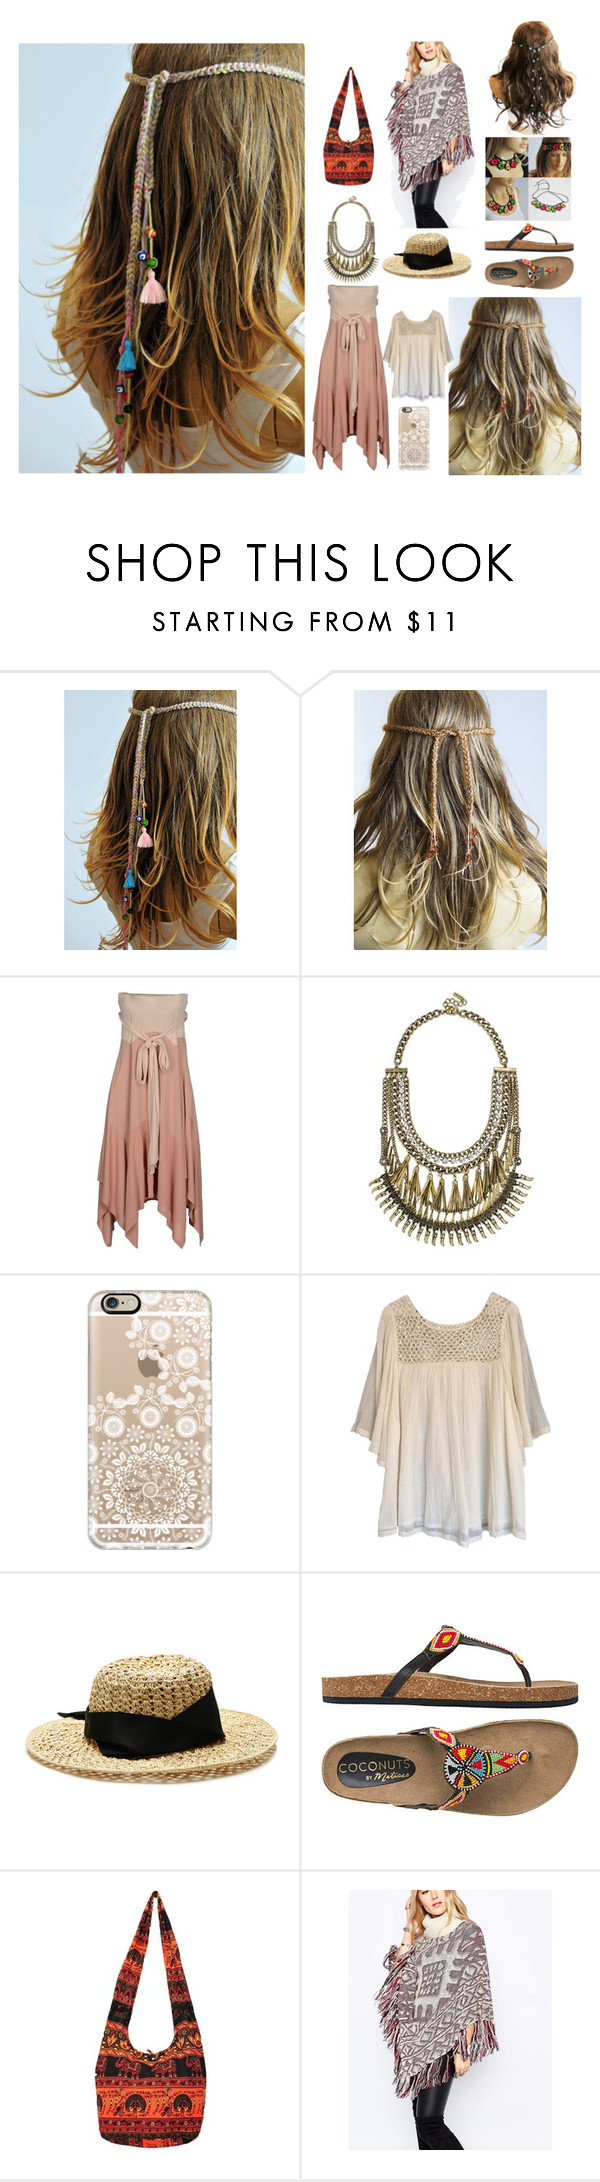 267 by selenay6 on Polyvore featuring moda, Haute Hippie, Spiritual Hippie, Coconuts, BaubleBar, Sensi Studio and Casetify